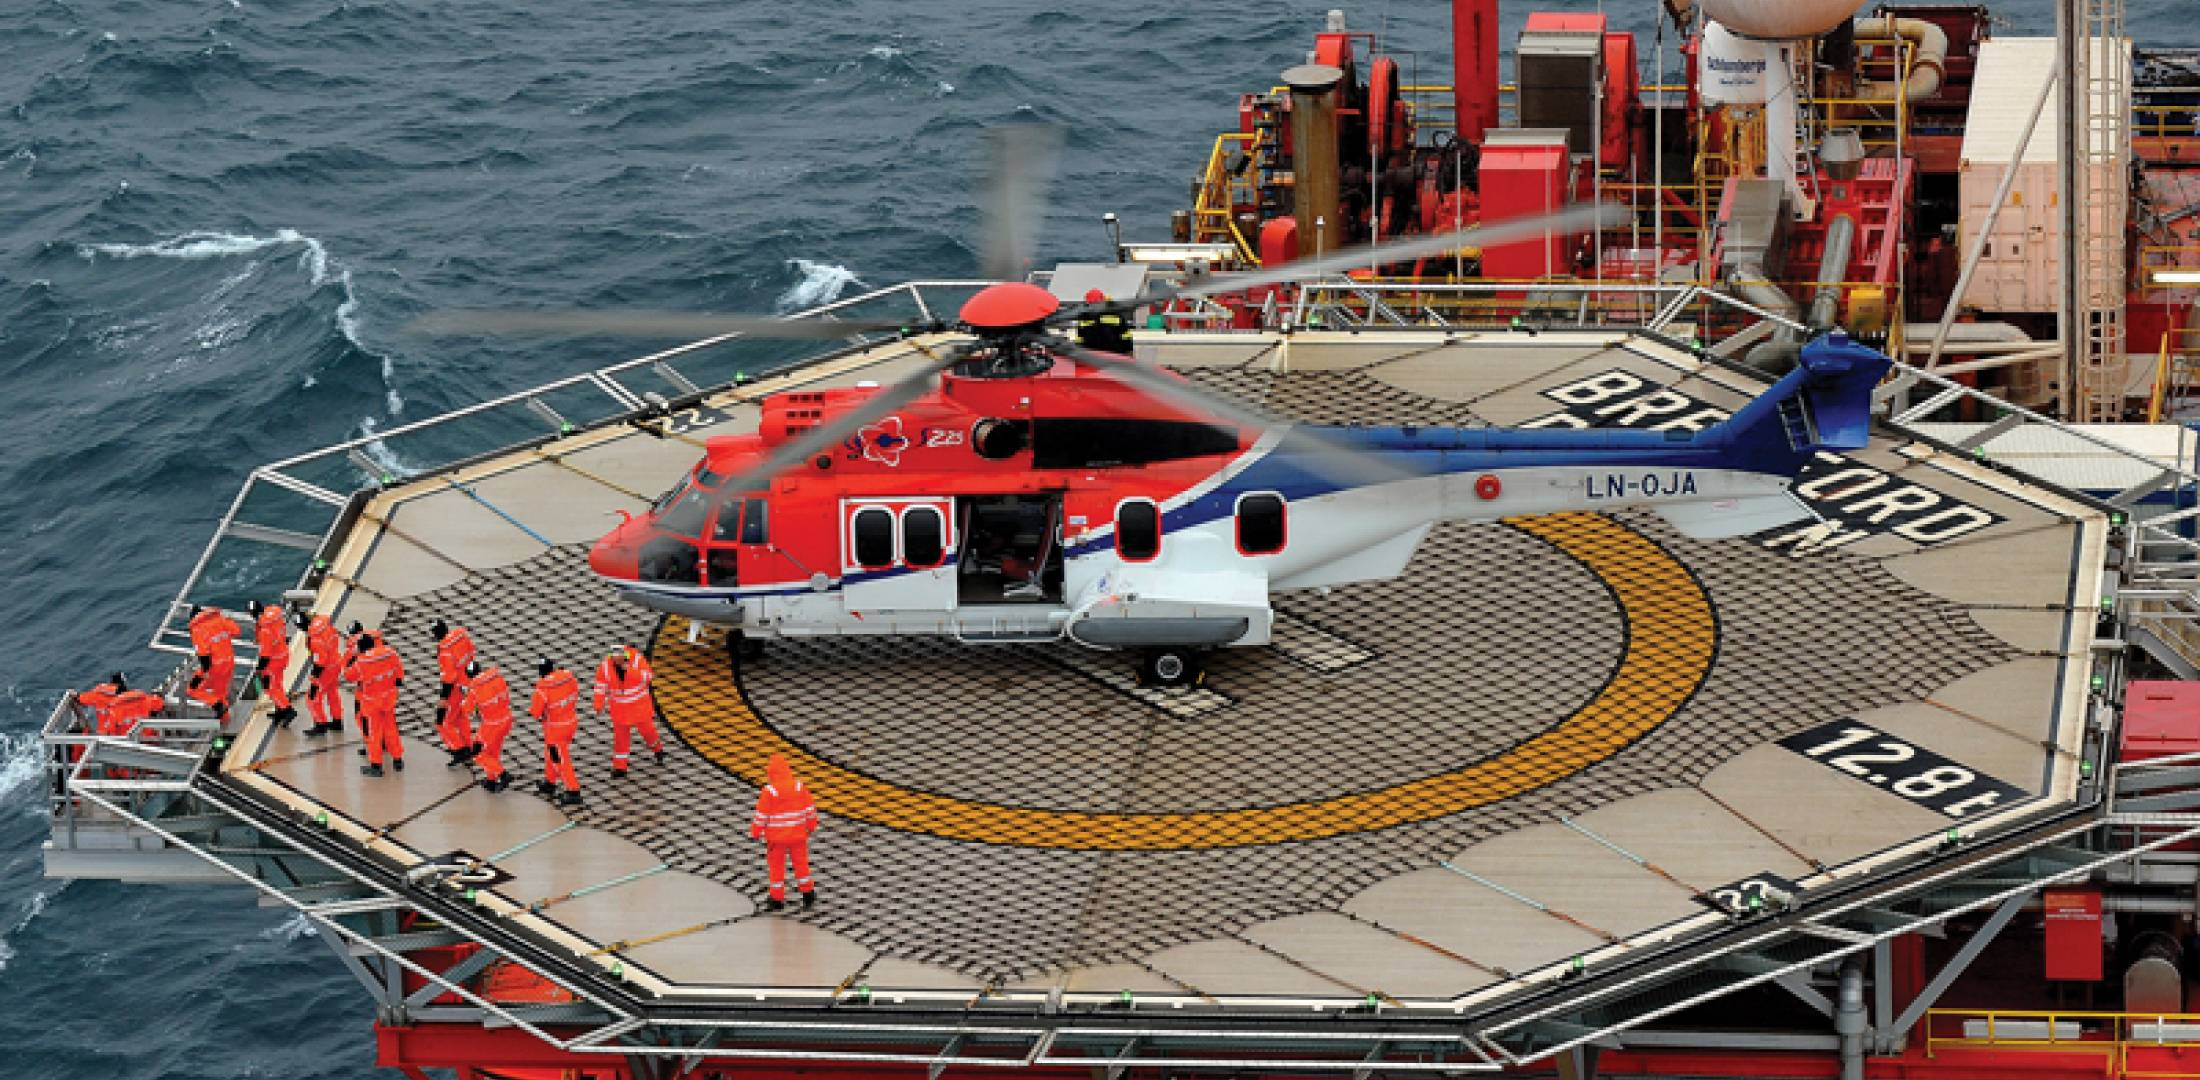 Main Gearbox Remains Helicopters' Achilles Heel | Business